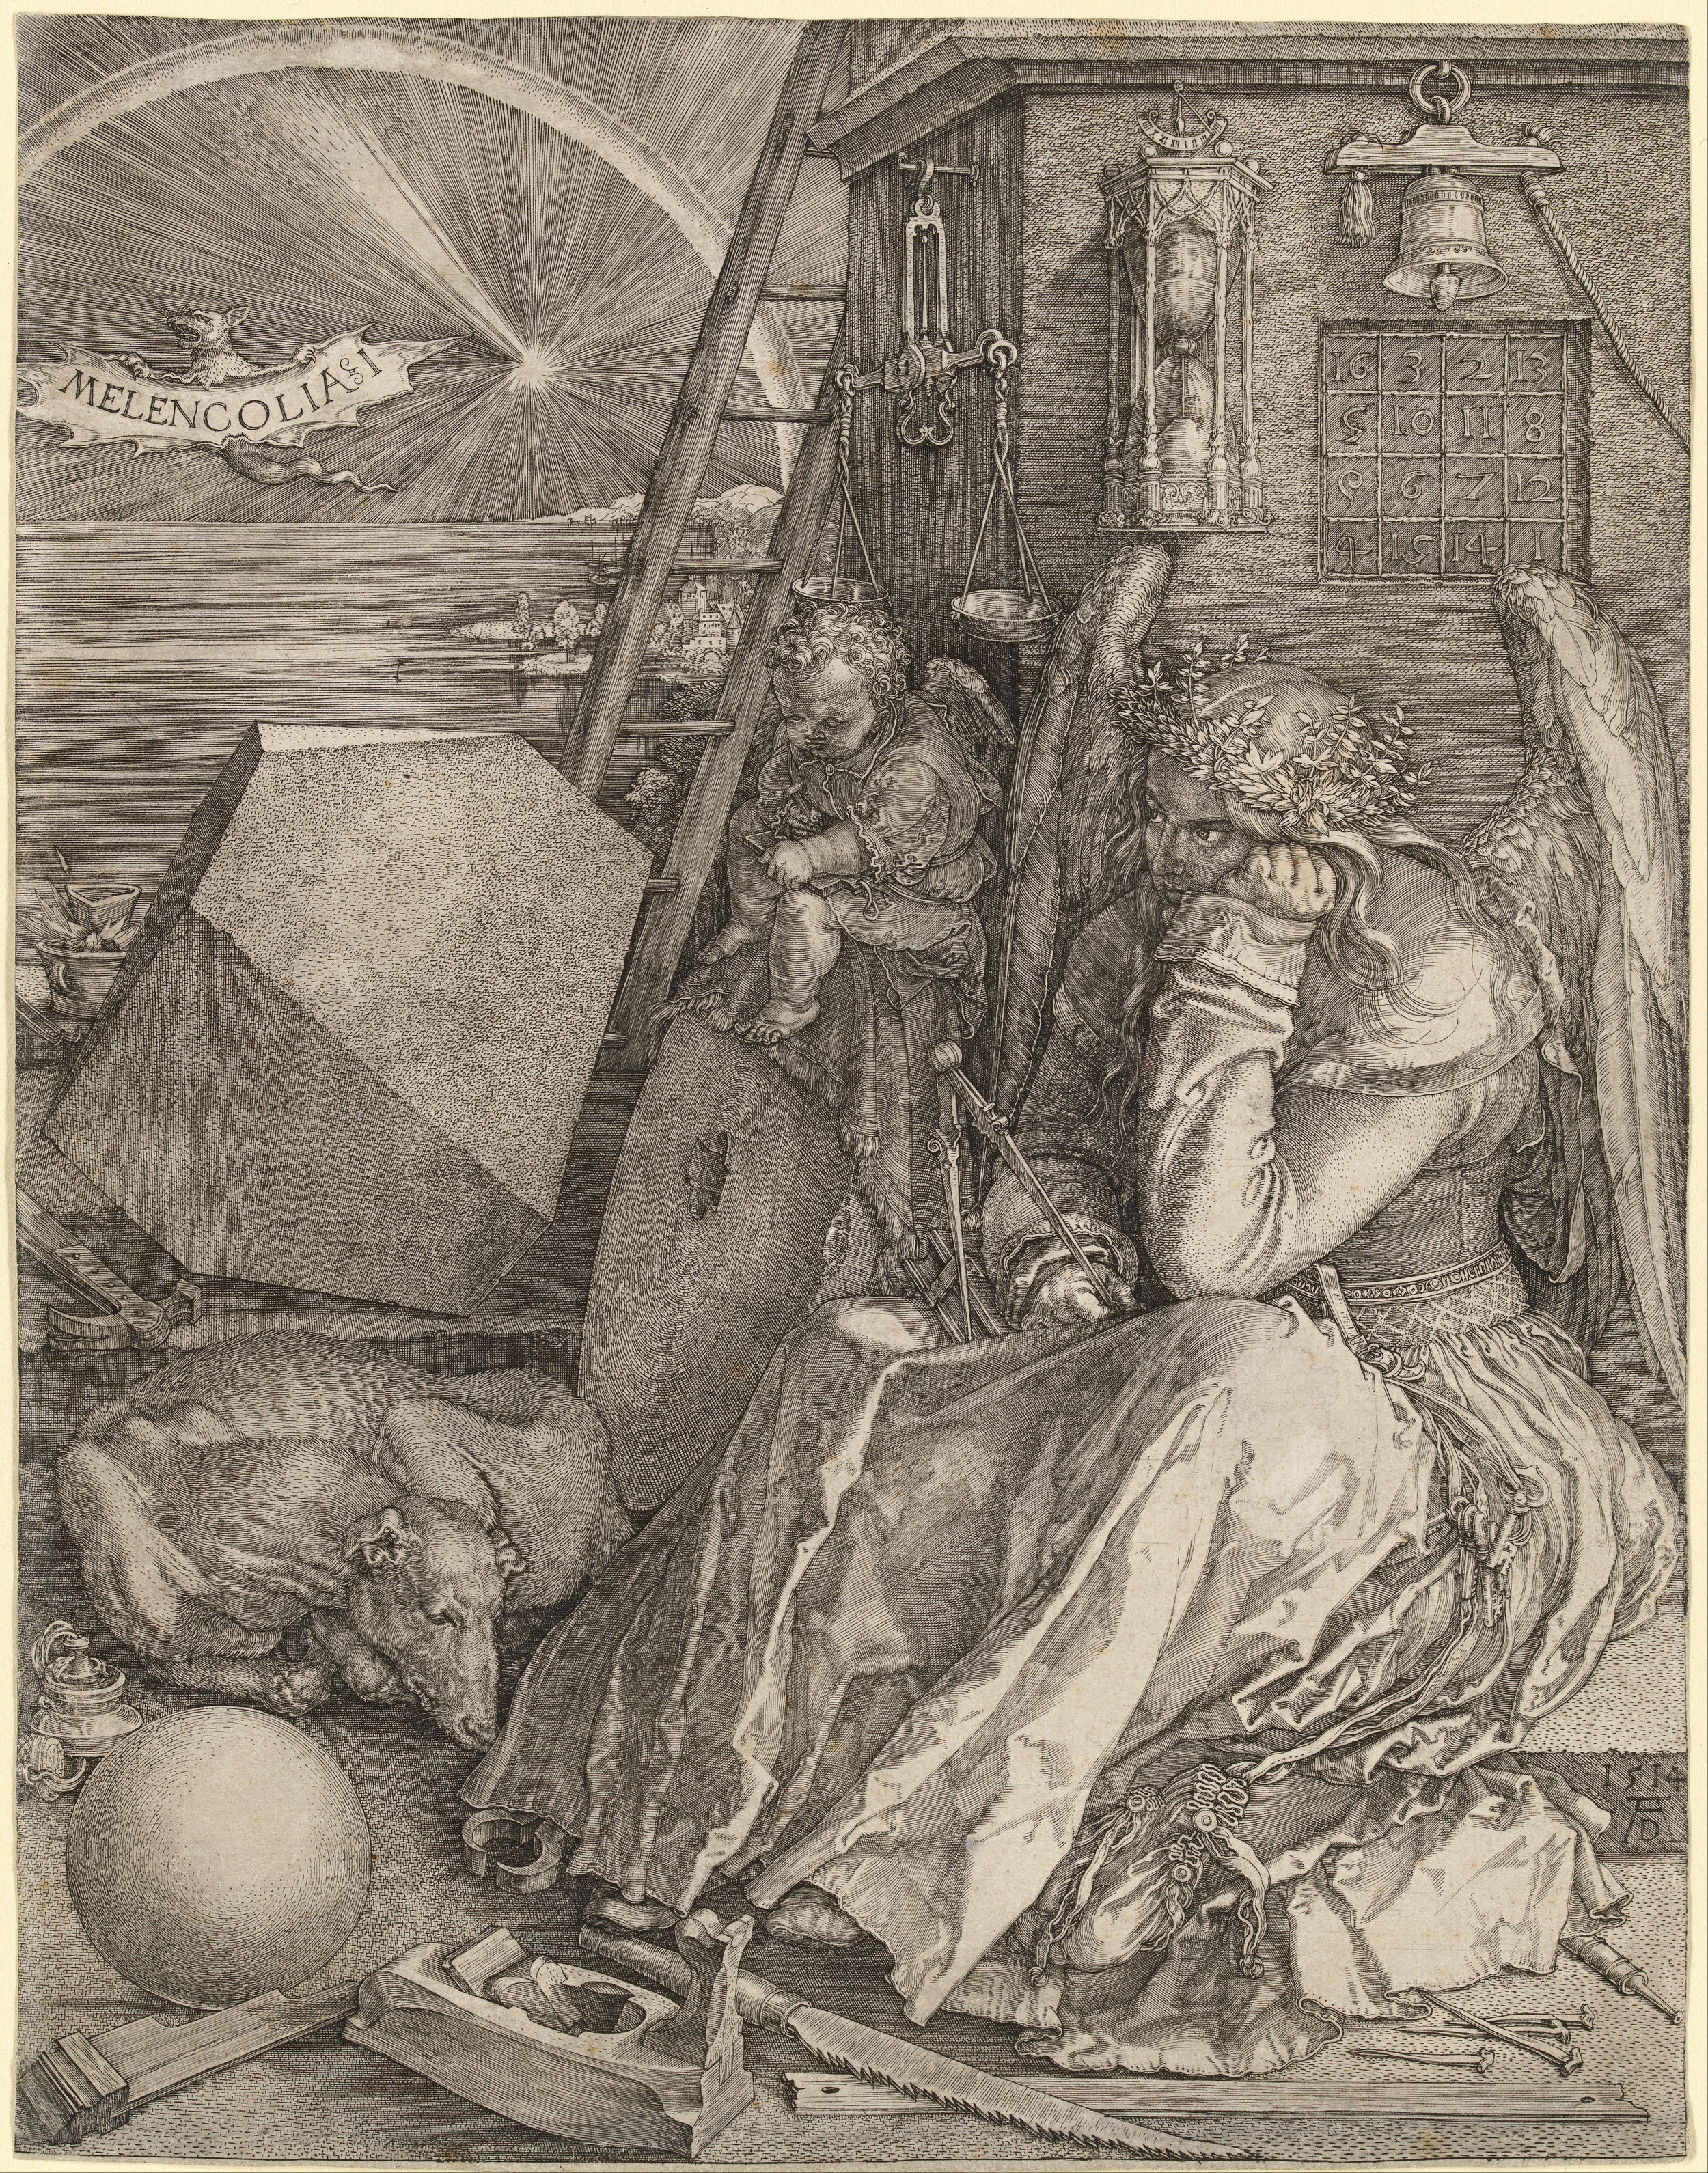 Albrecht durer the knight death and the devil symbolism which symbol of fidelity